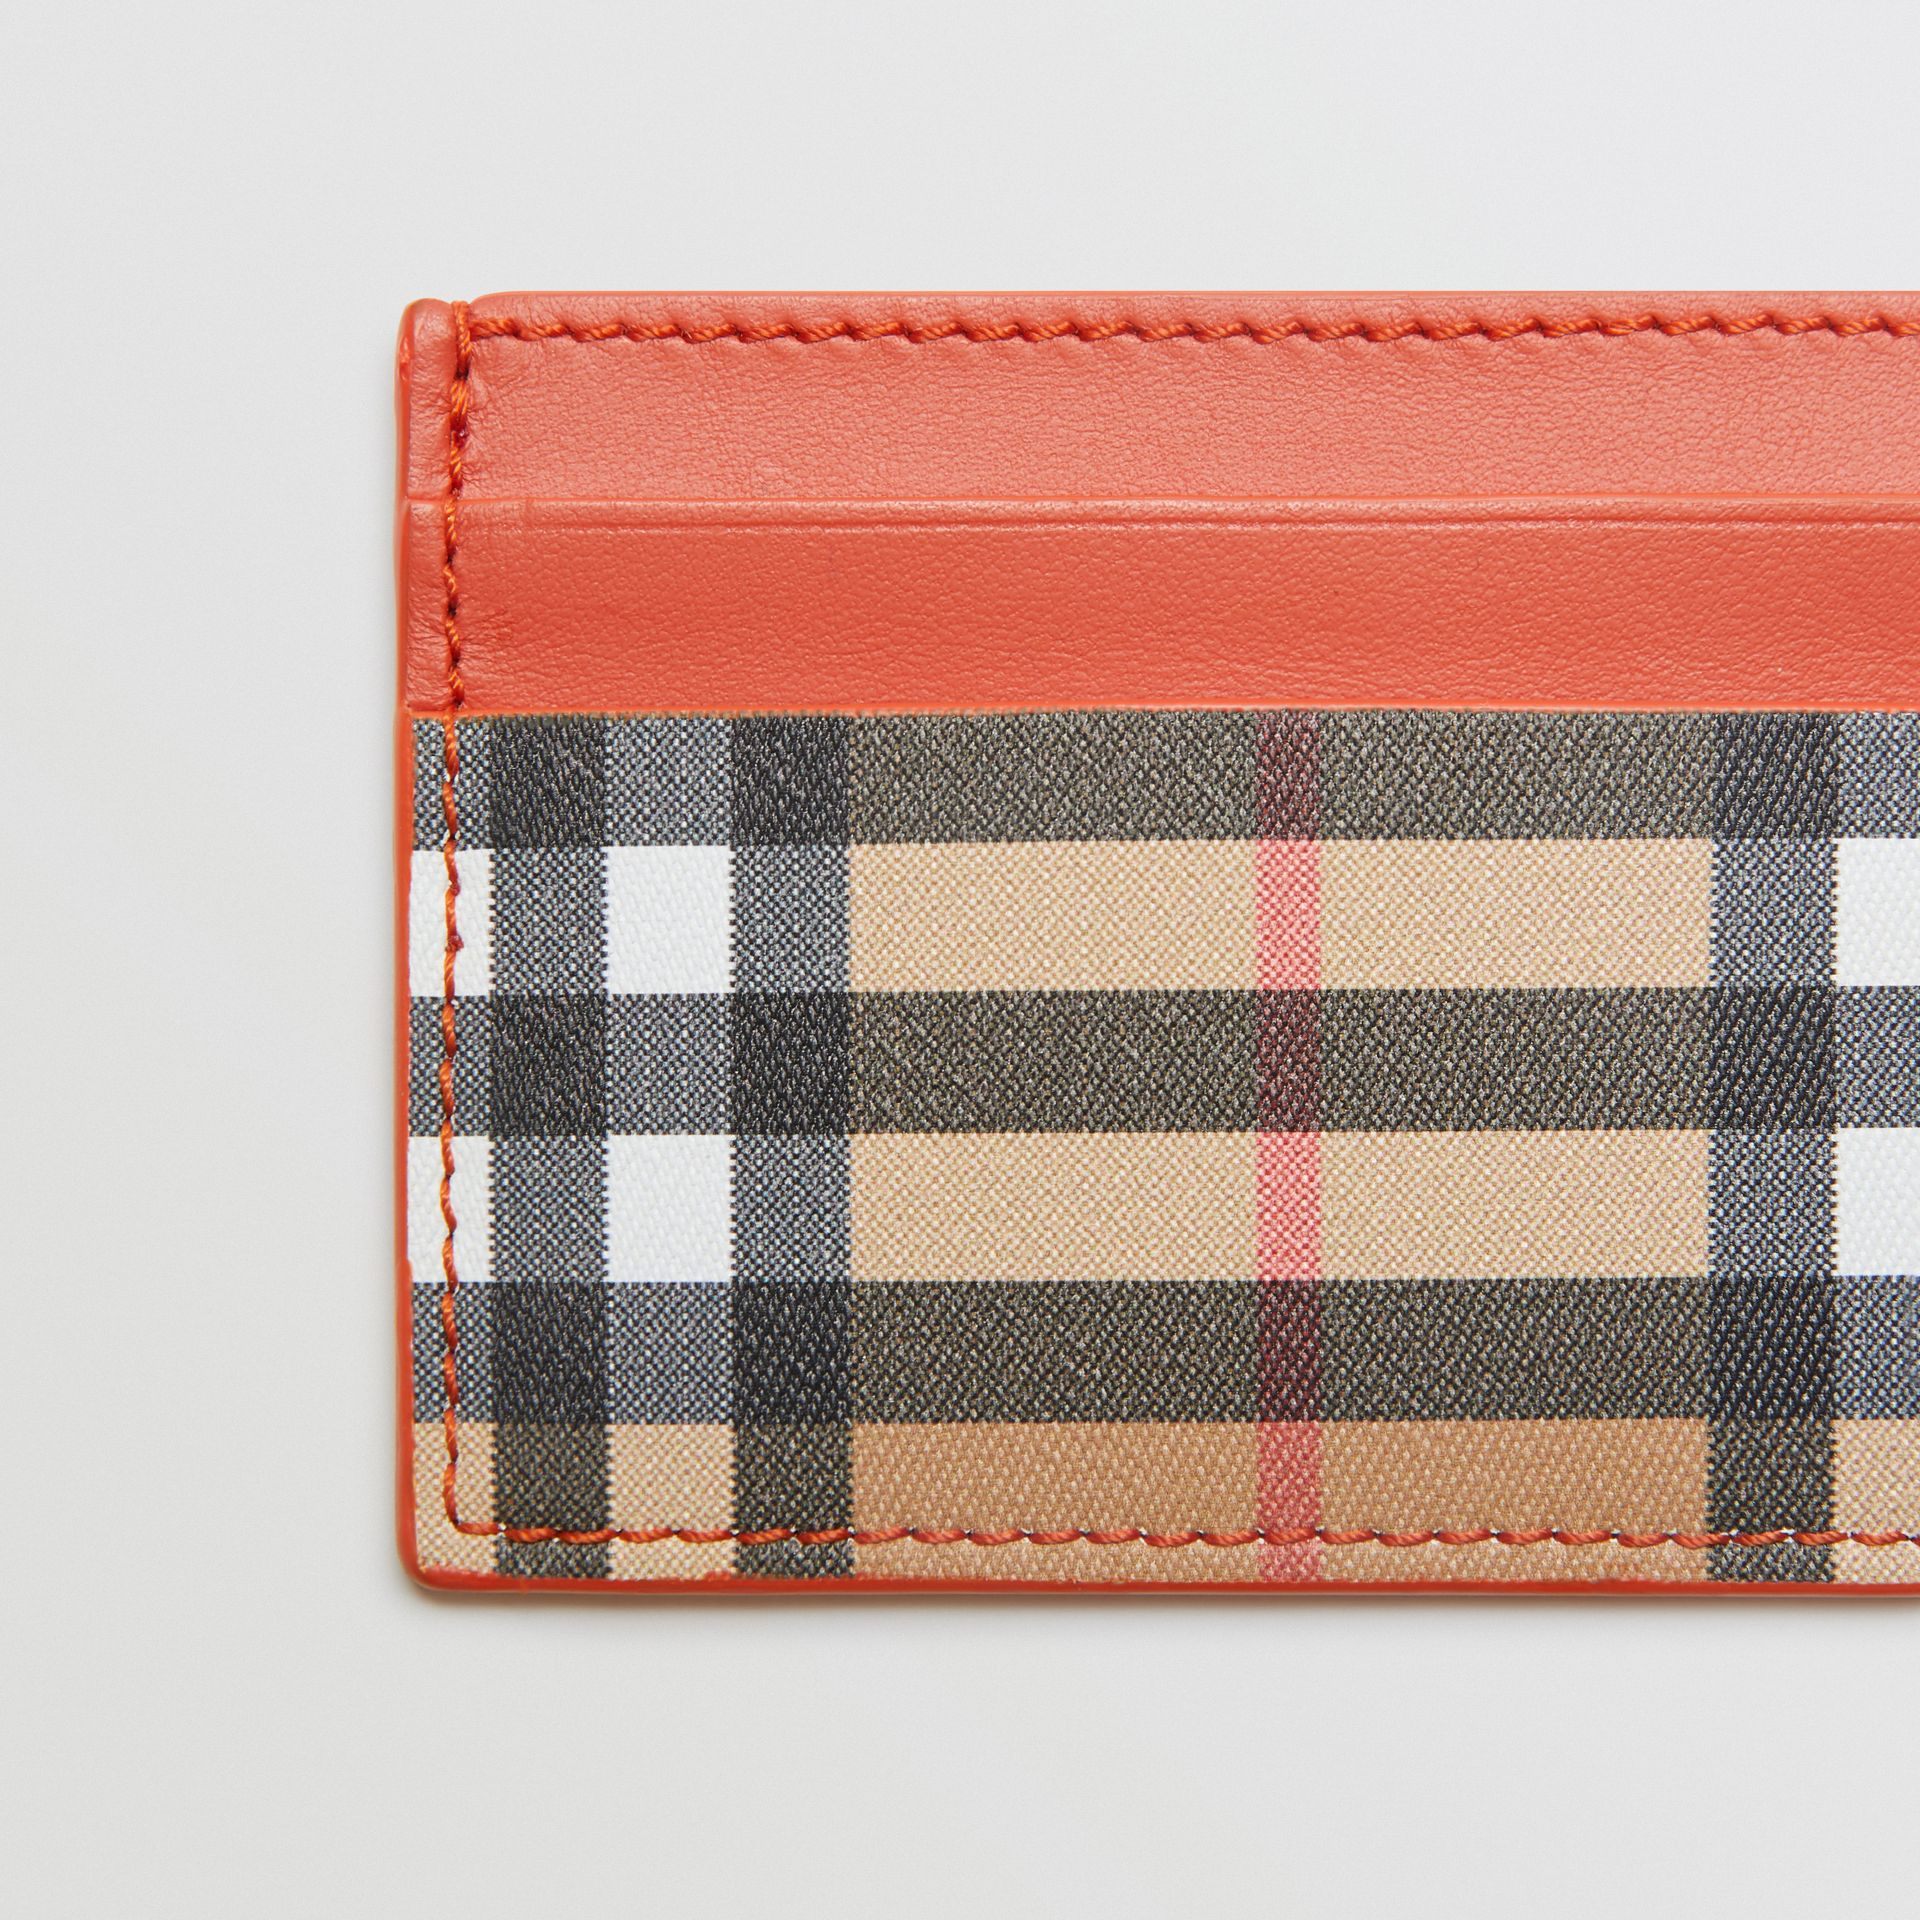 Vintage Check and Leather Card Case in Clementine - Women | Burberry Singapore - gallery image 1